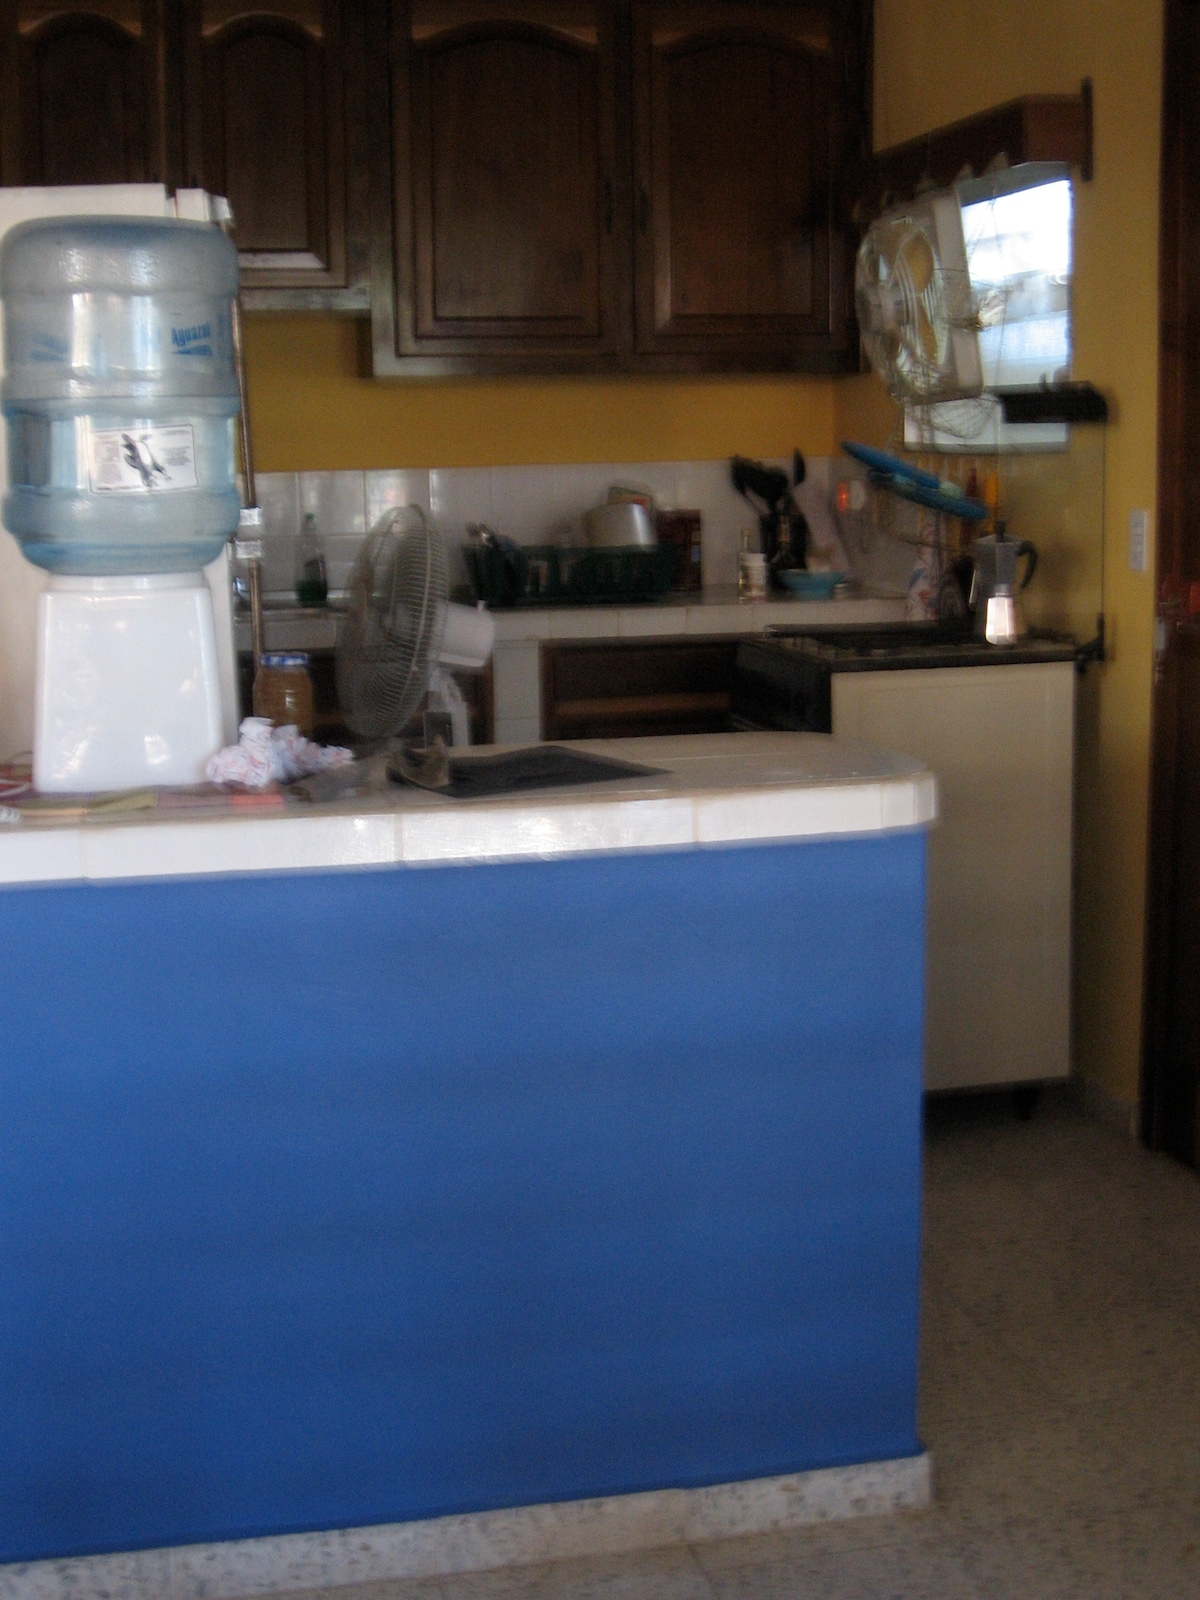 Fully operational kitchen with oven, microwave, fridge that guests are welcome to use